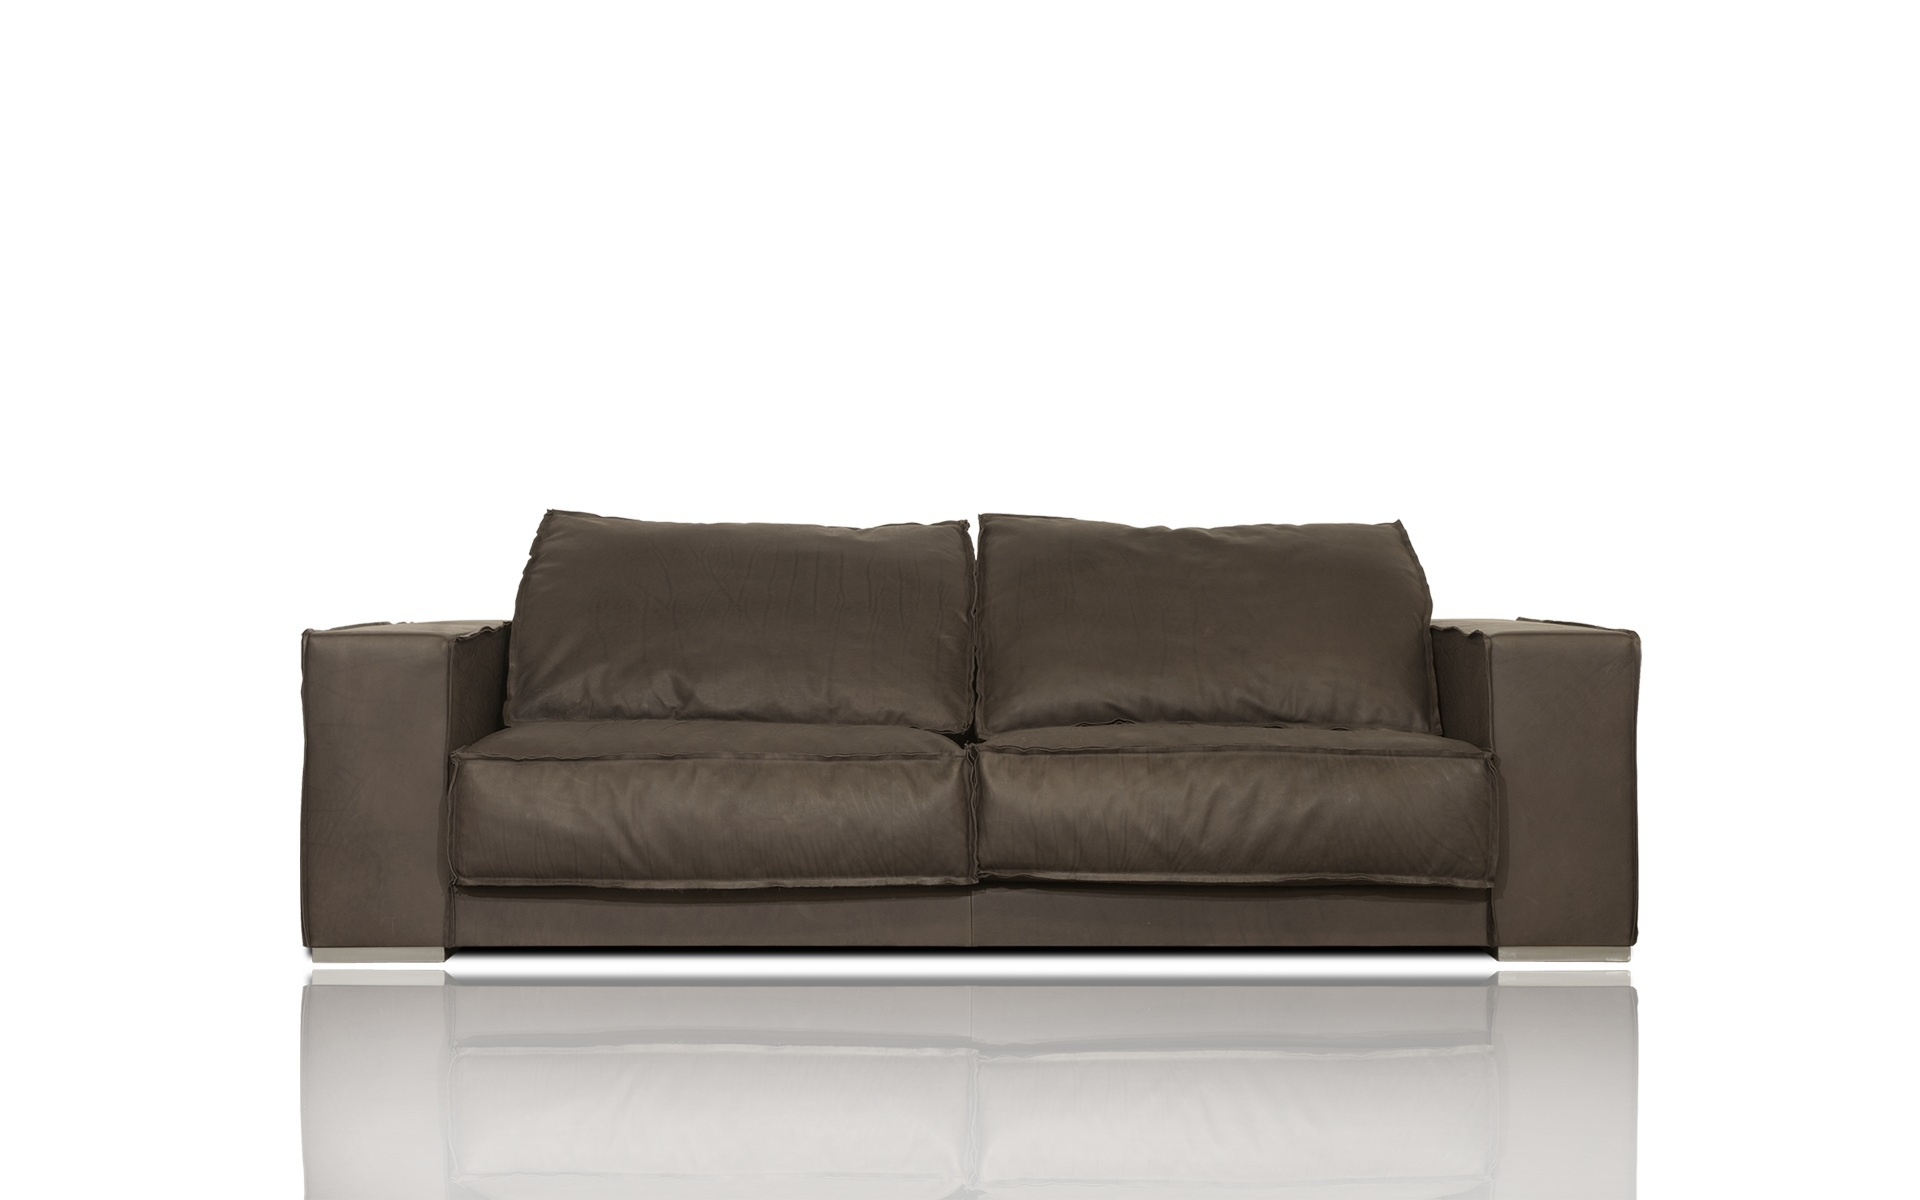 Leather sectional sofa Budapest Soft Baxter Luxury furniture MR